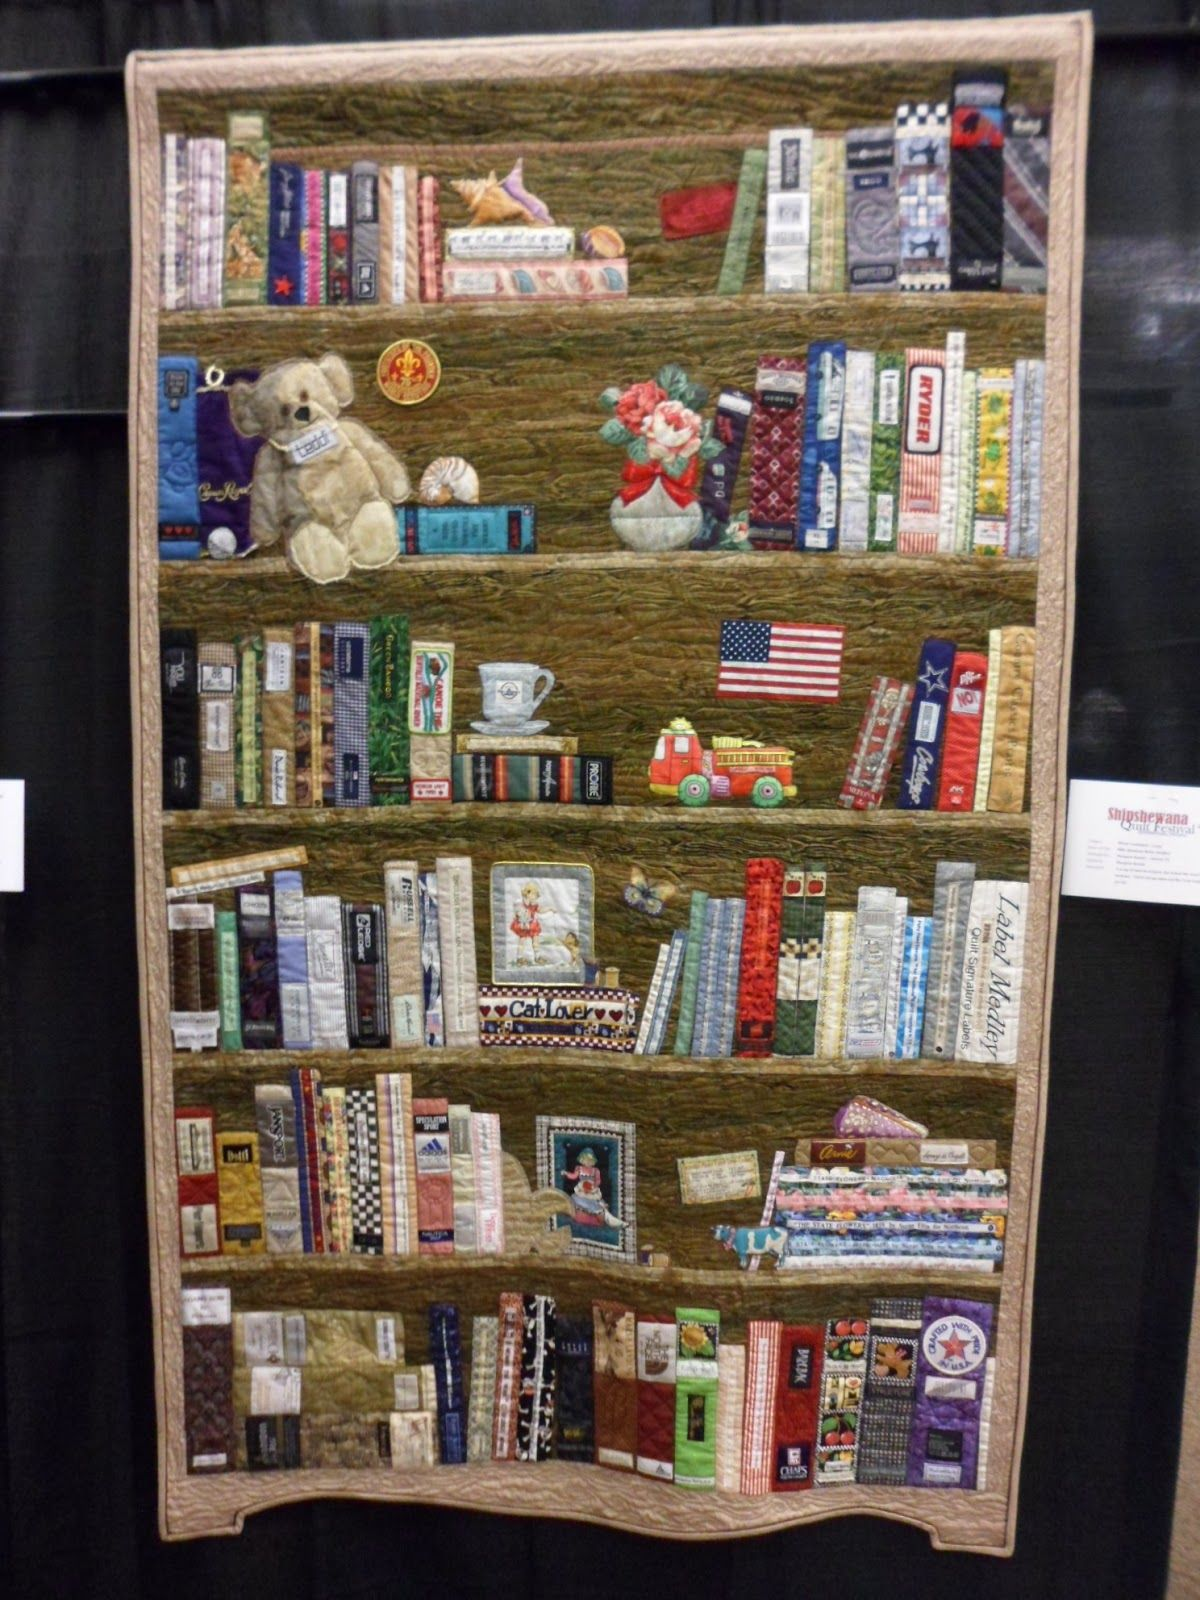 Elaborate Bookshelf Quilt From The Northern Deb Quilts Blog